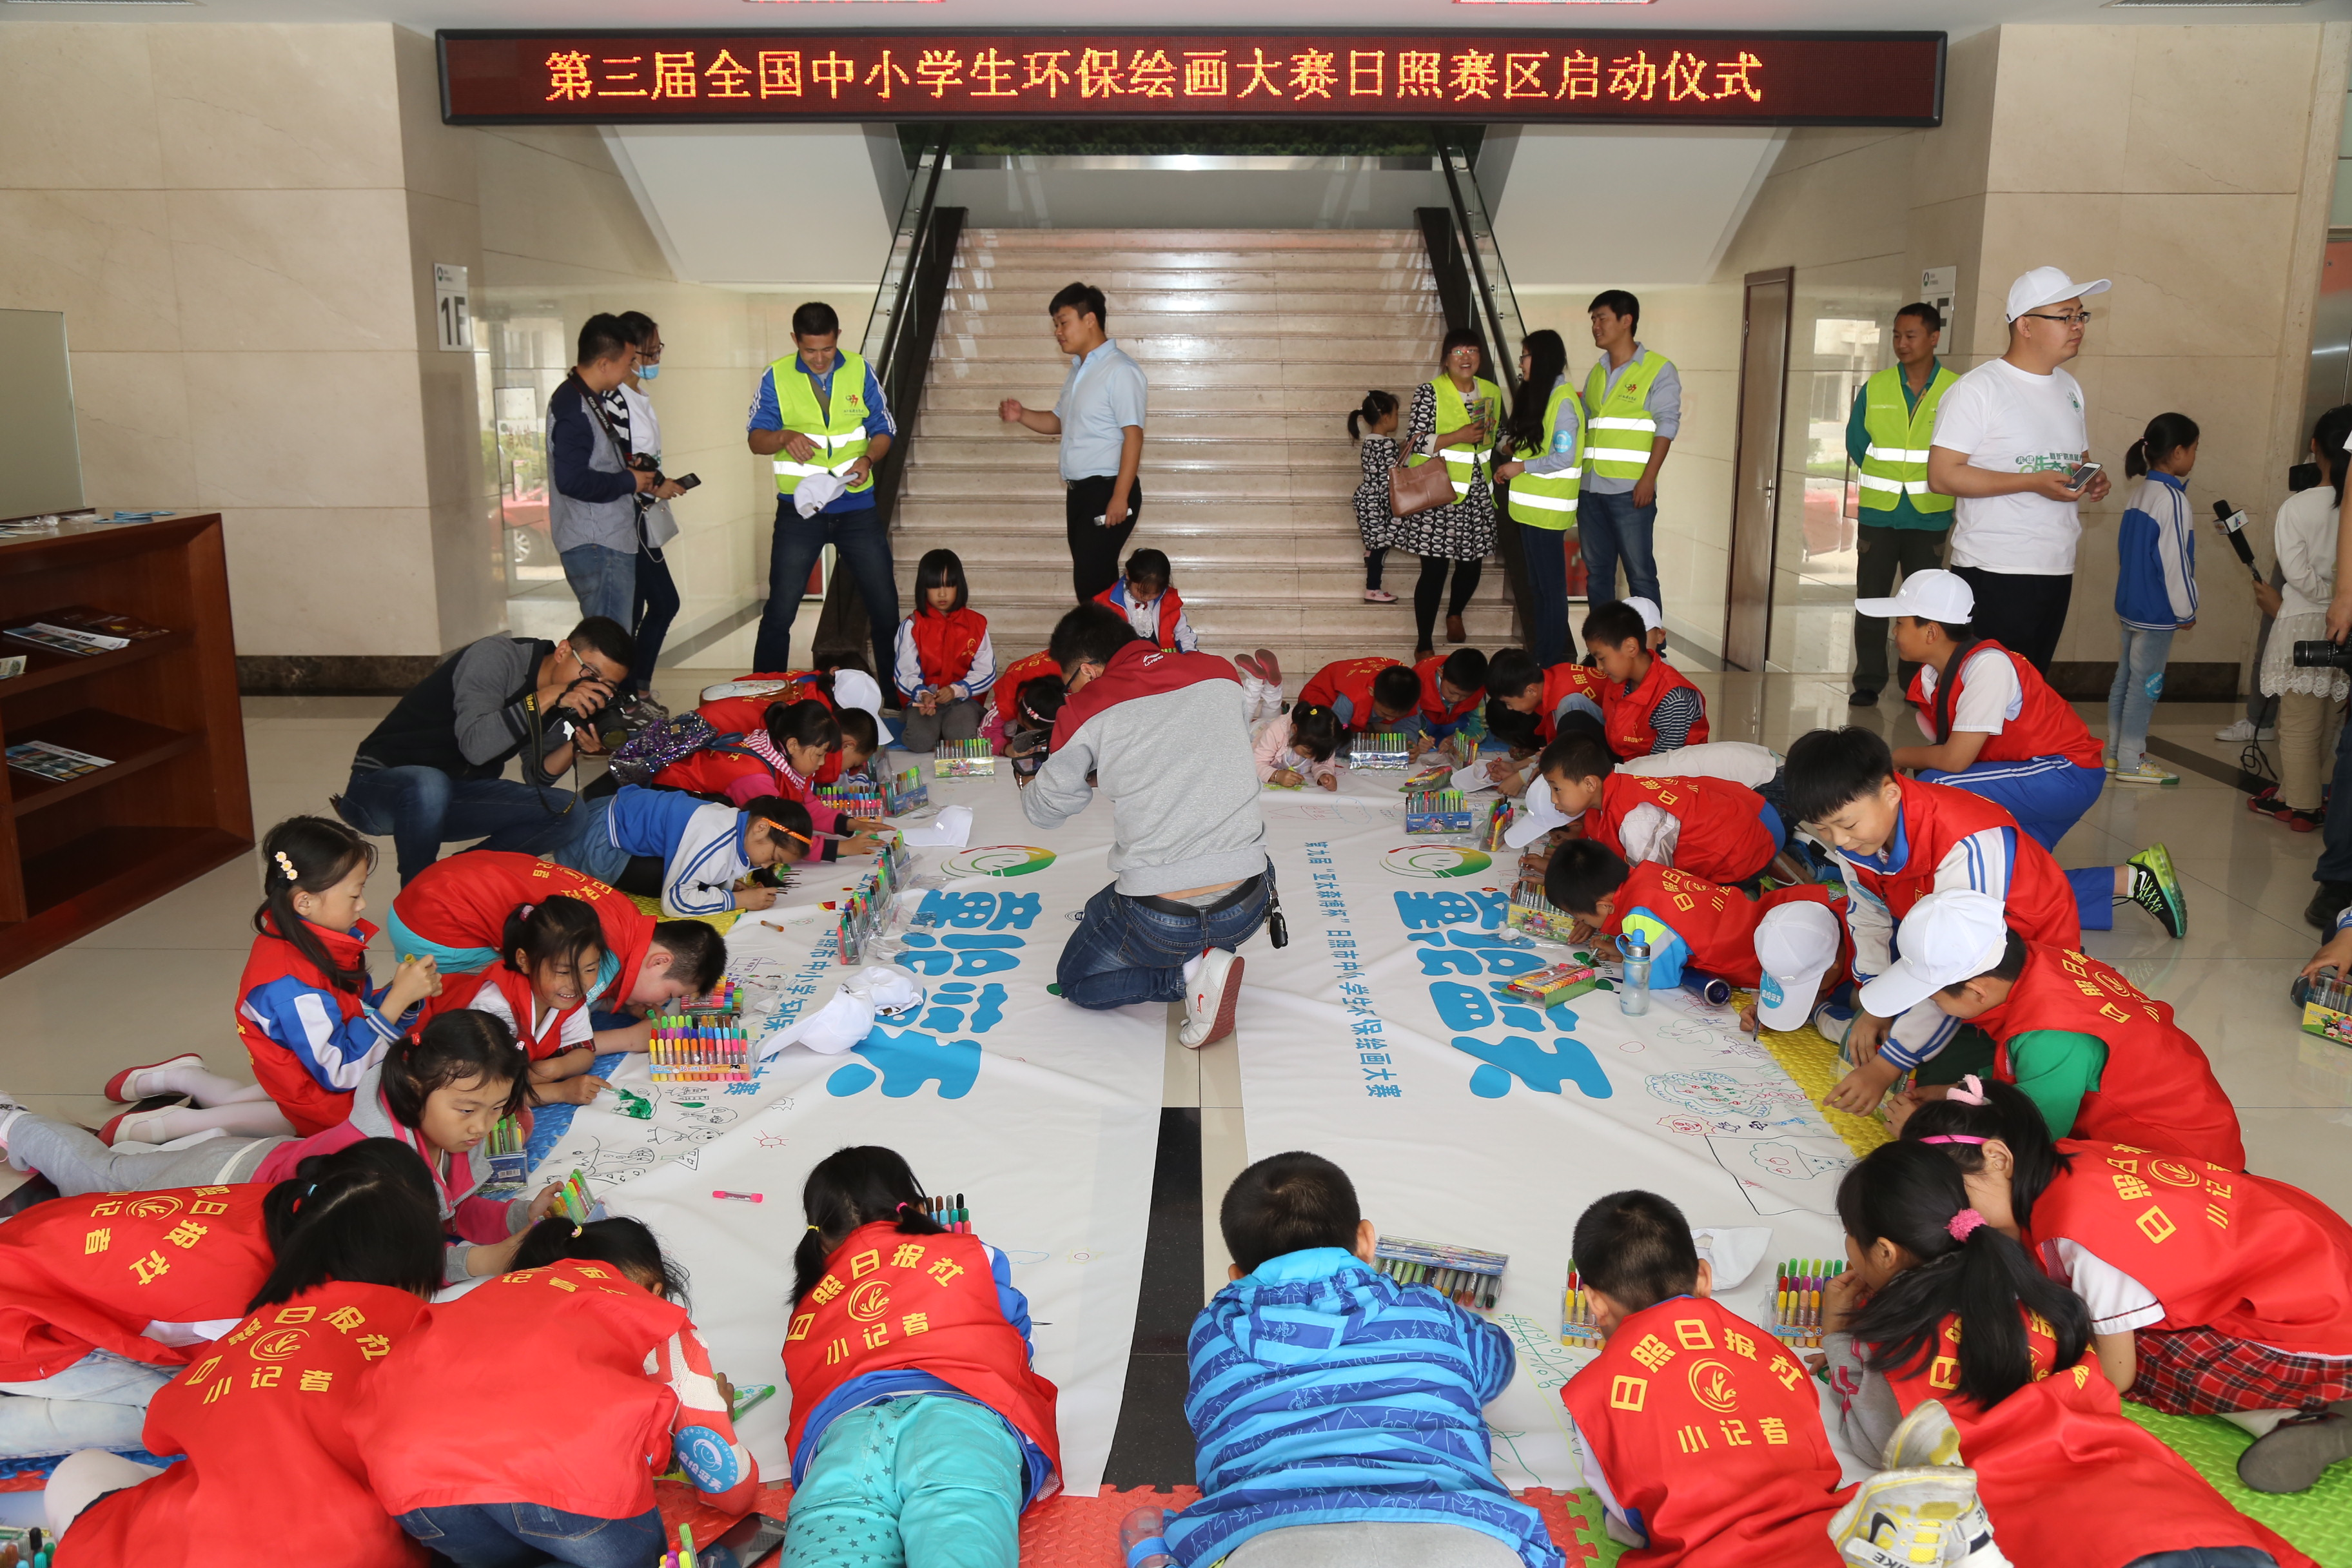 Asia Symbol (Shandong) launched its ninth annual Environmental Protection Painting Competition on June 5 (also World Environment Day), inviting over 40 school children to decorate the competition's banners with their artistic interpretations of safeguarding the environment.